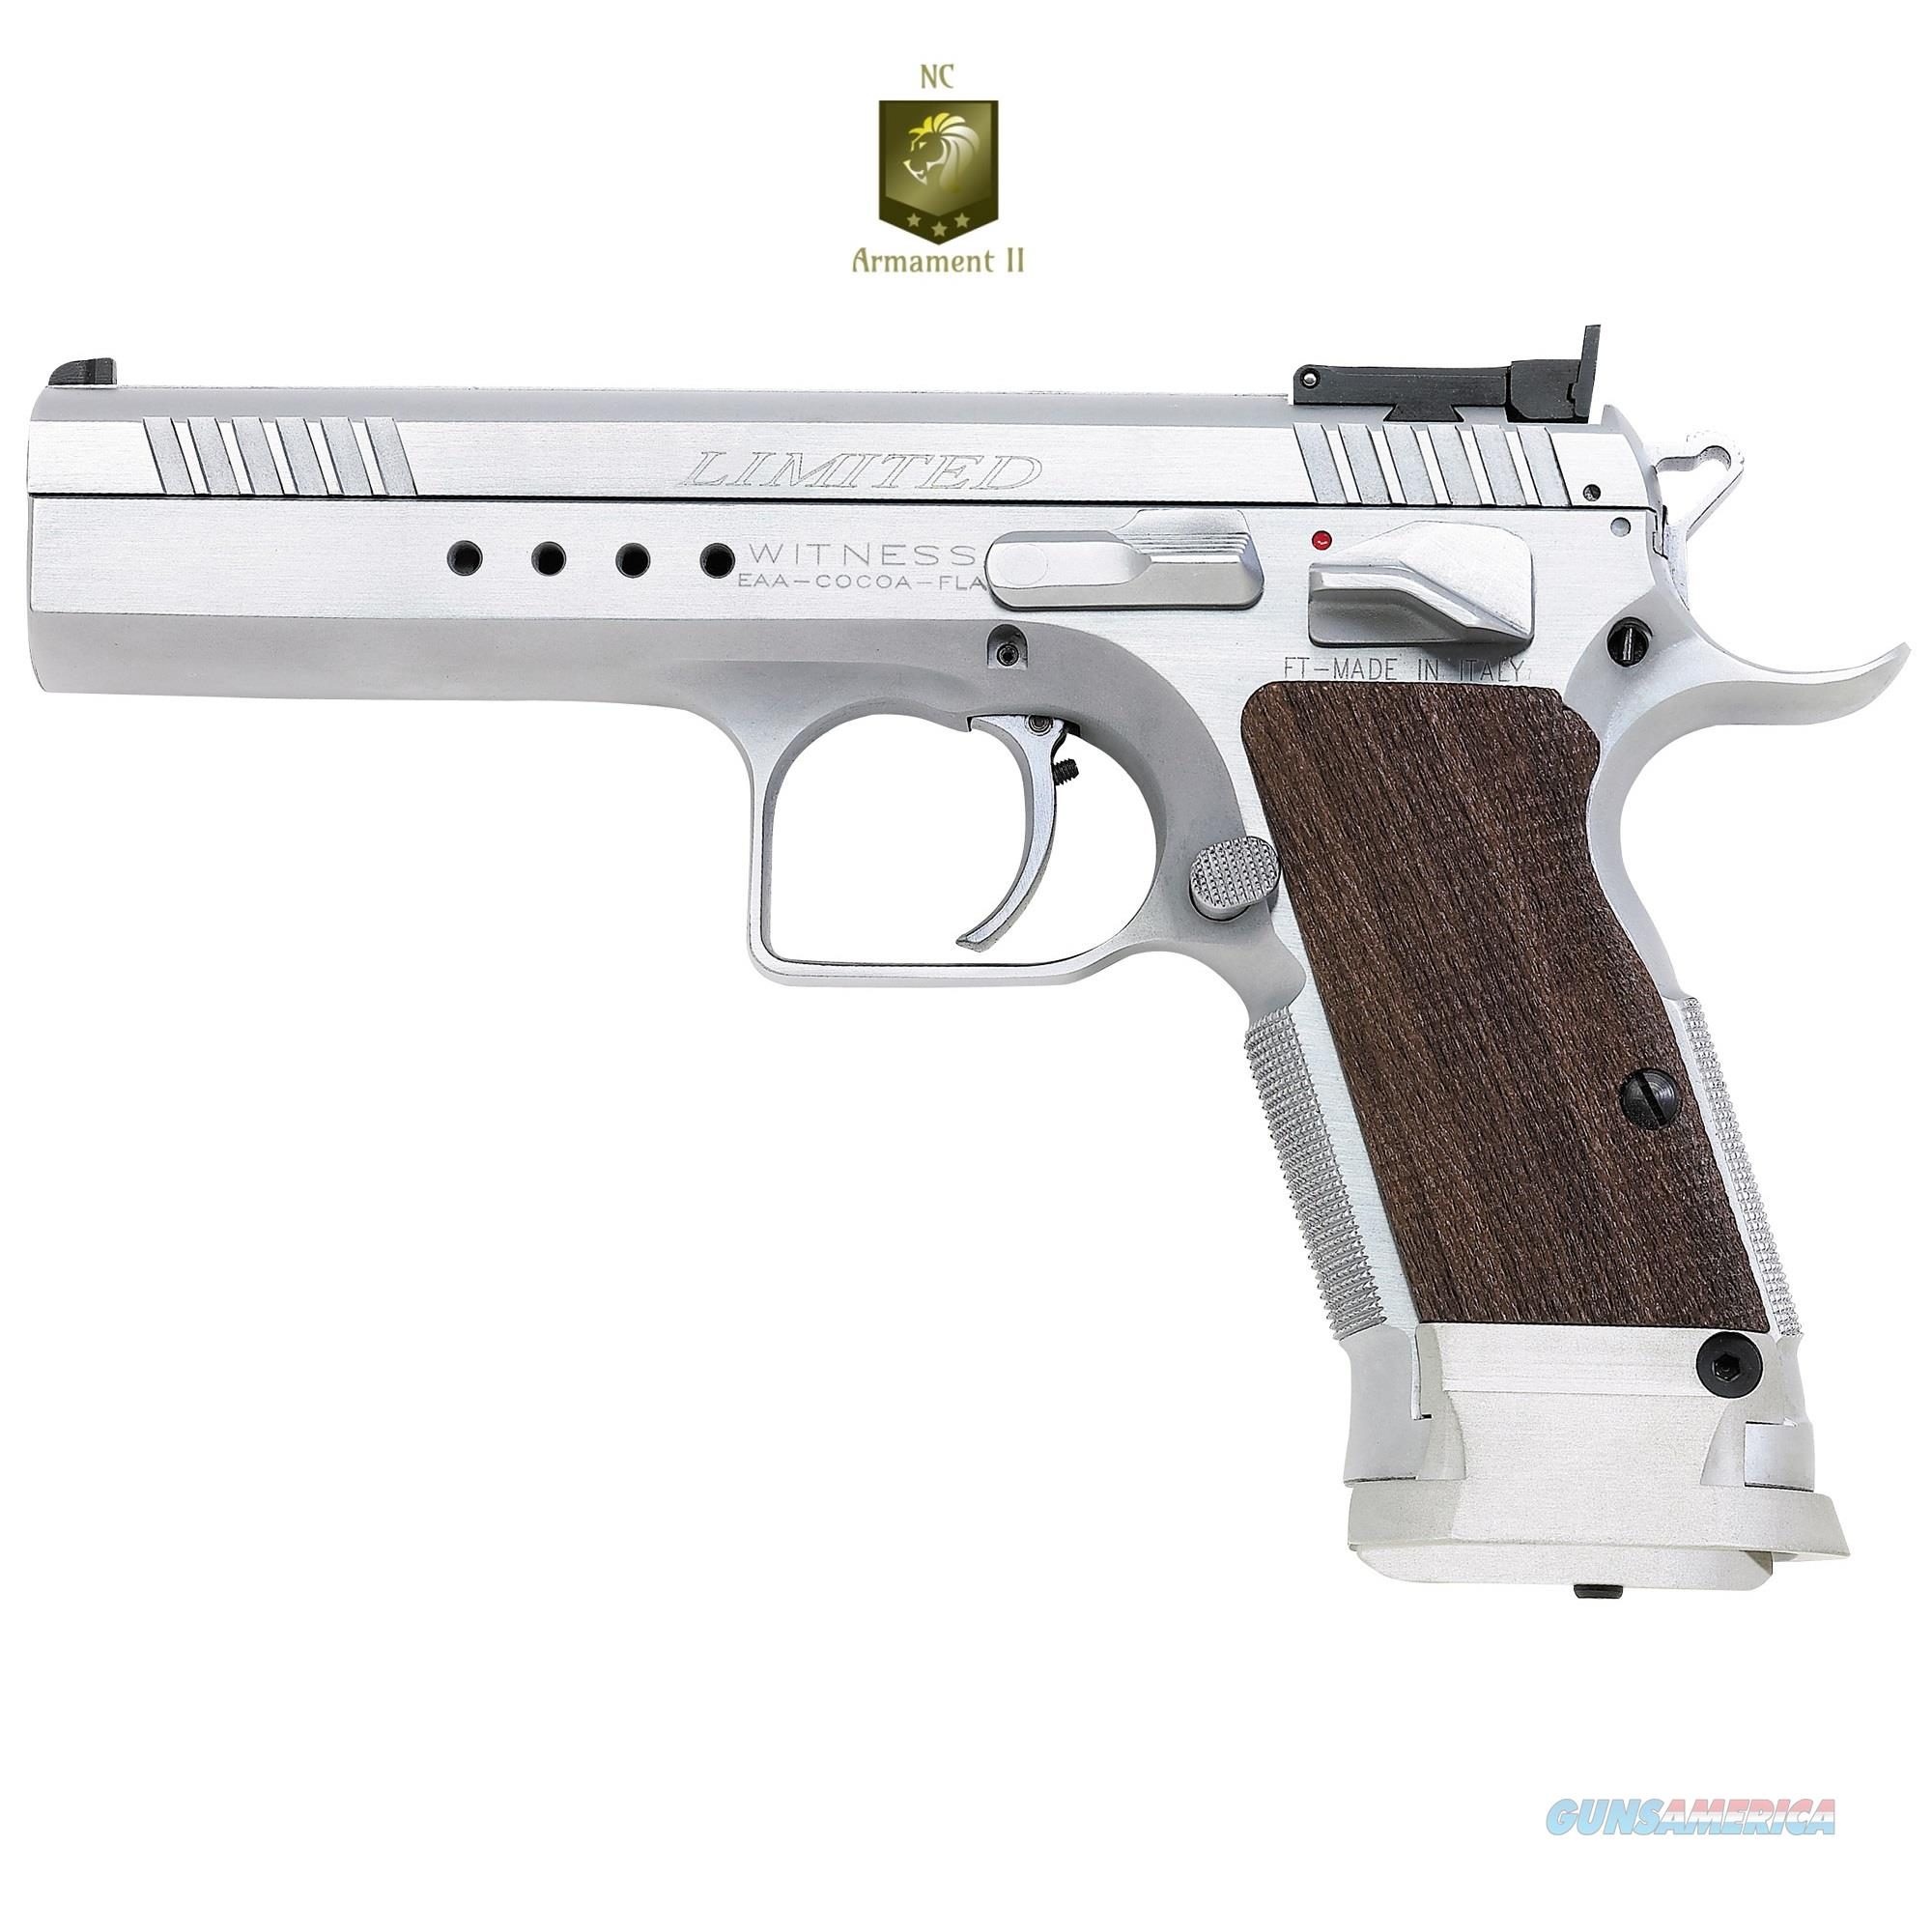 EAA Limited Witness Tanfoglio 10mm Walnut Grips  Guns > Pistols > EAA Pistols > Other